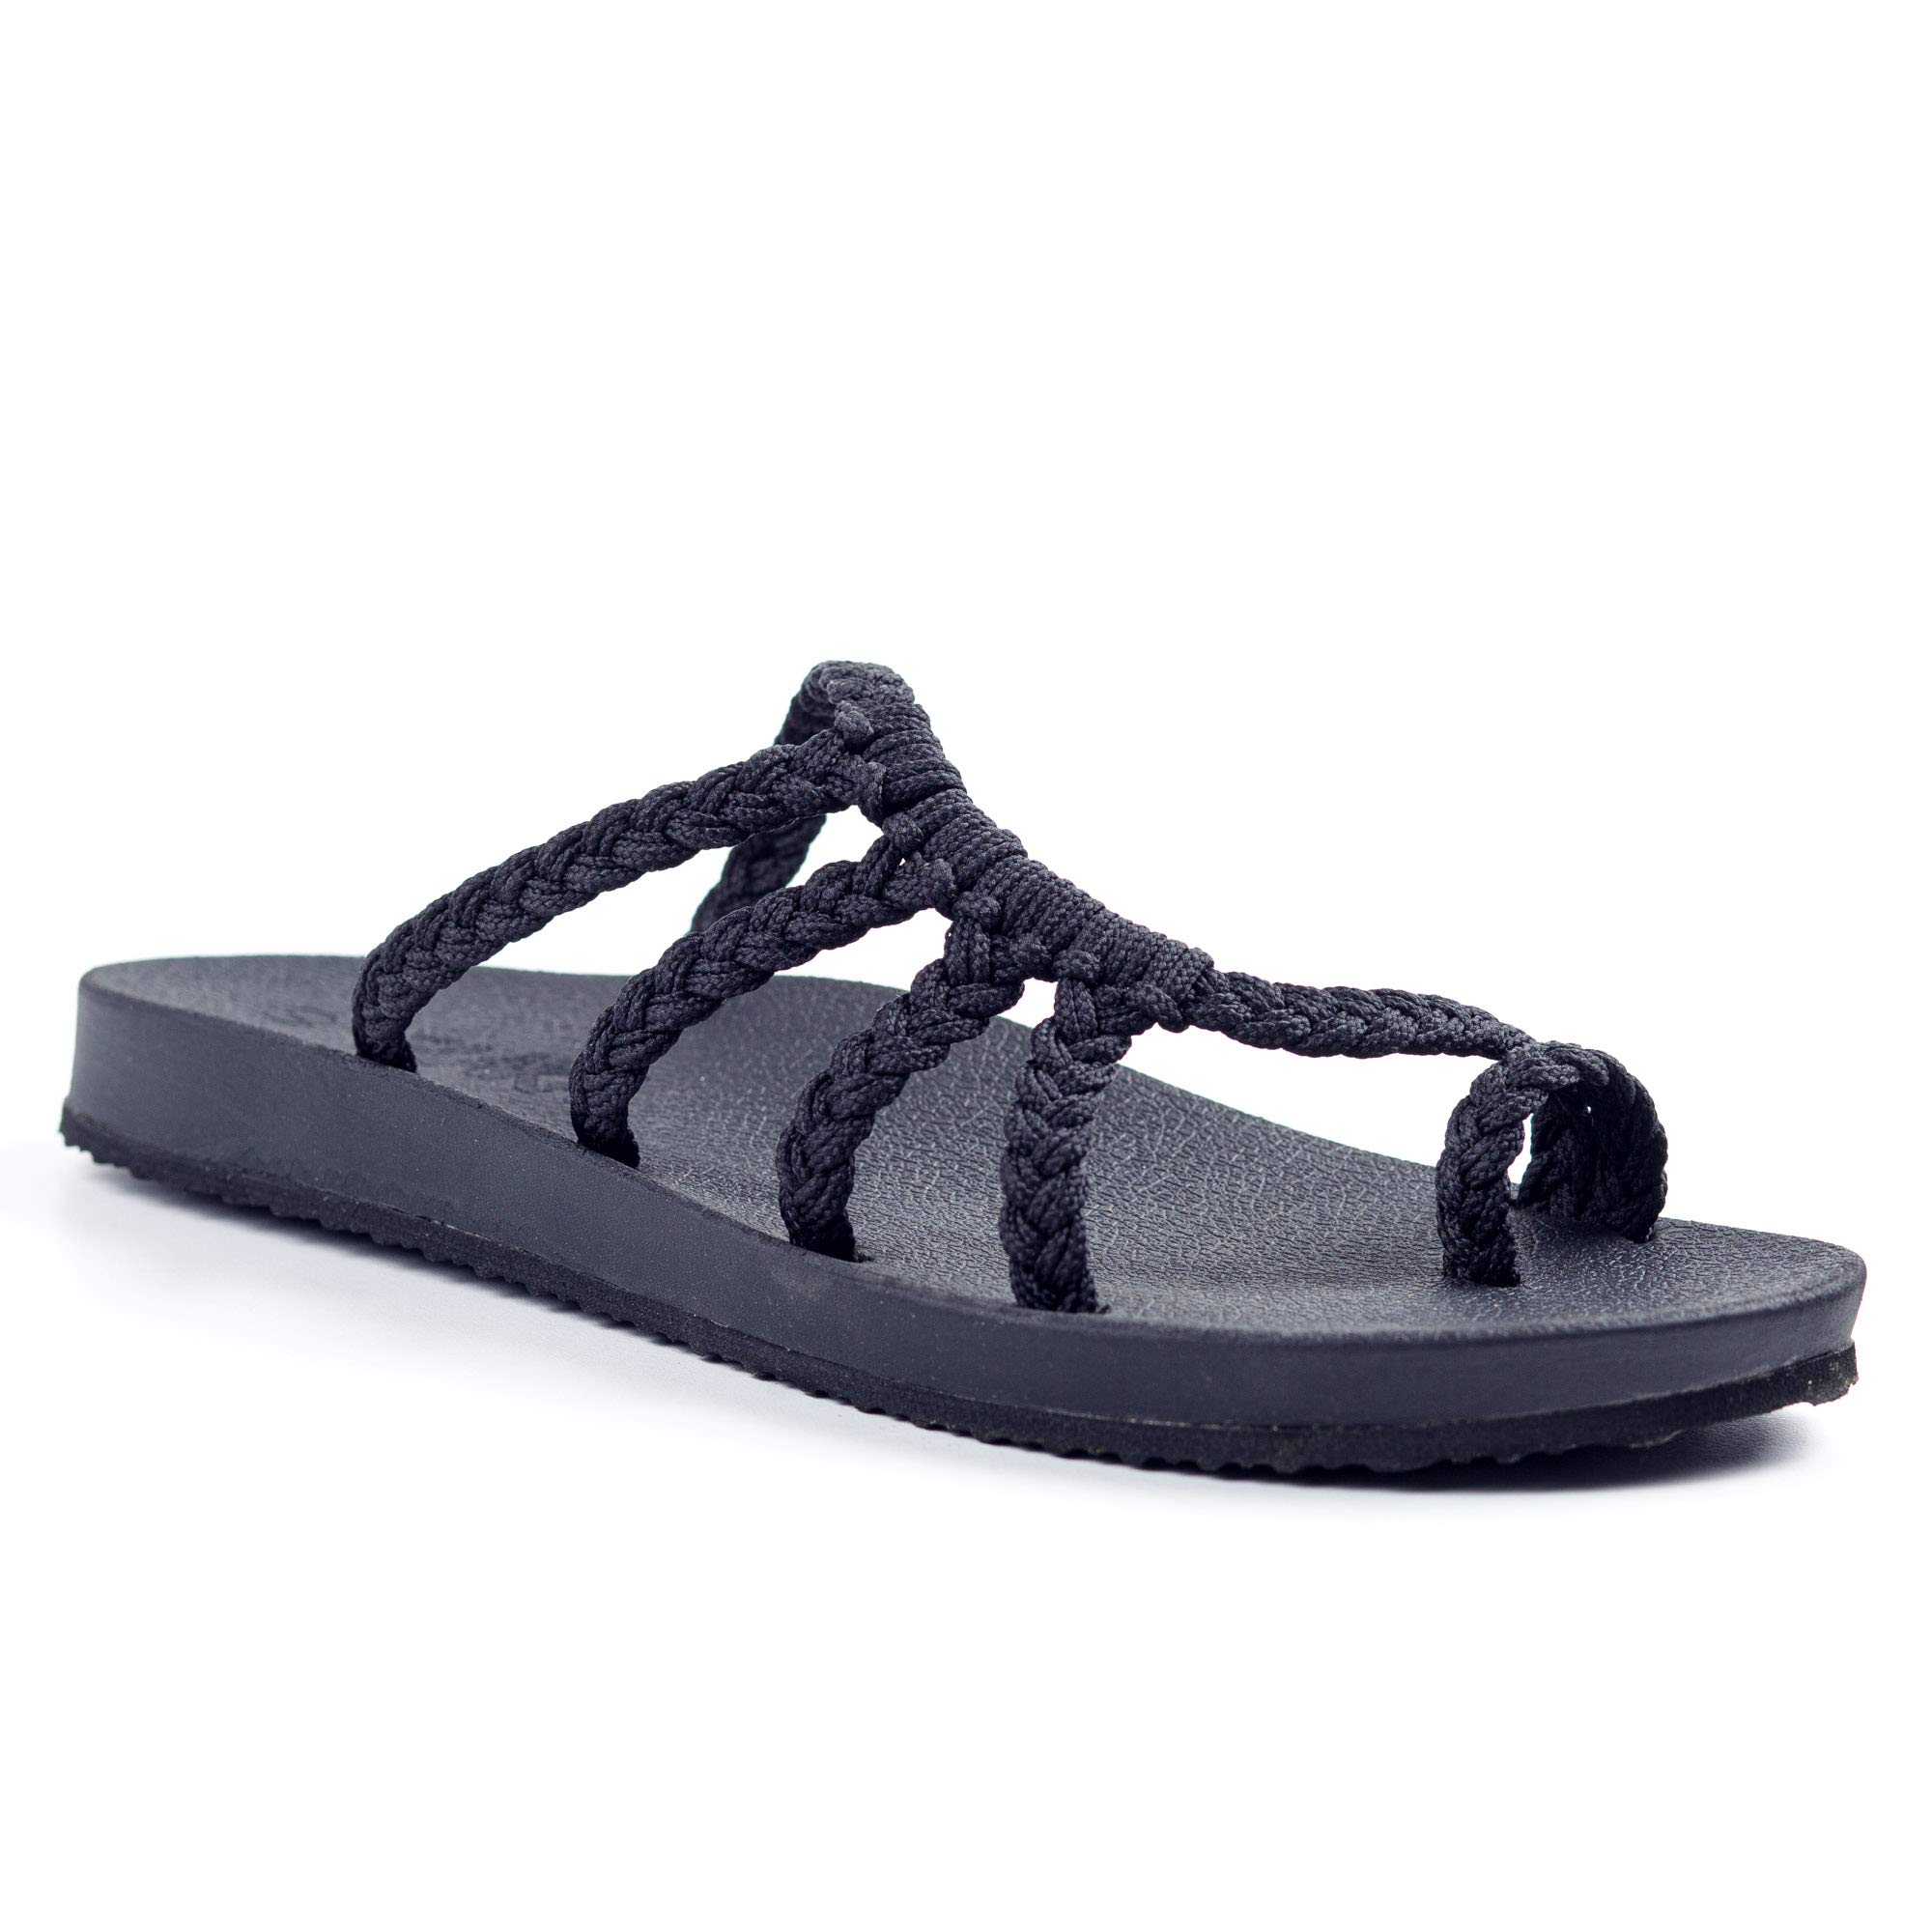 Plaka Relief Flip Flops for Women with Arch Support | Comfy Sandals for Women | Perfect for The Beach, Long Walks or Poolside